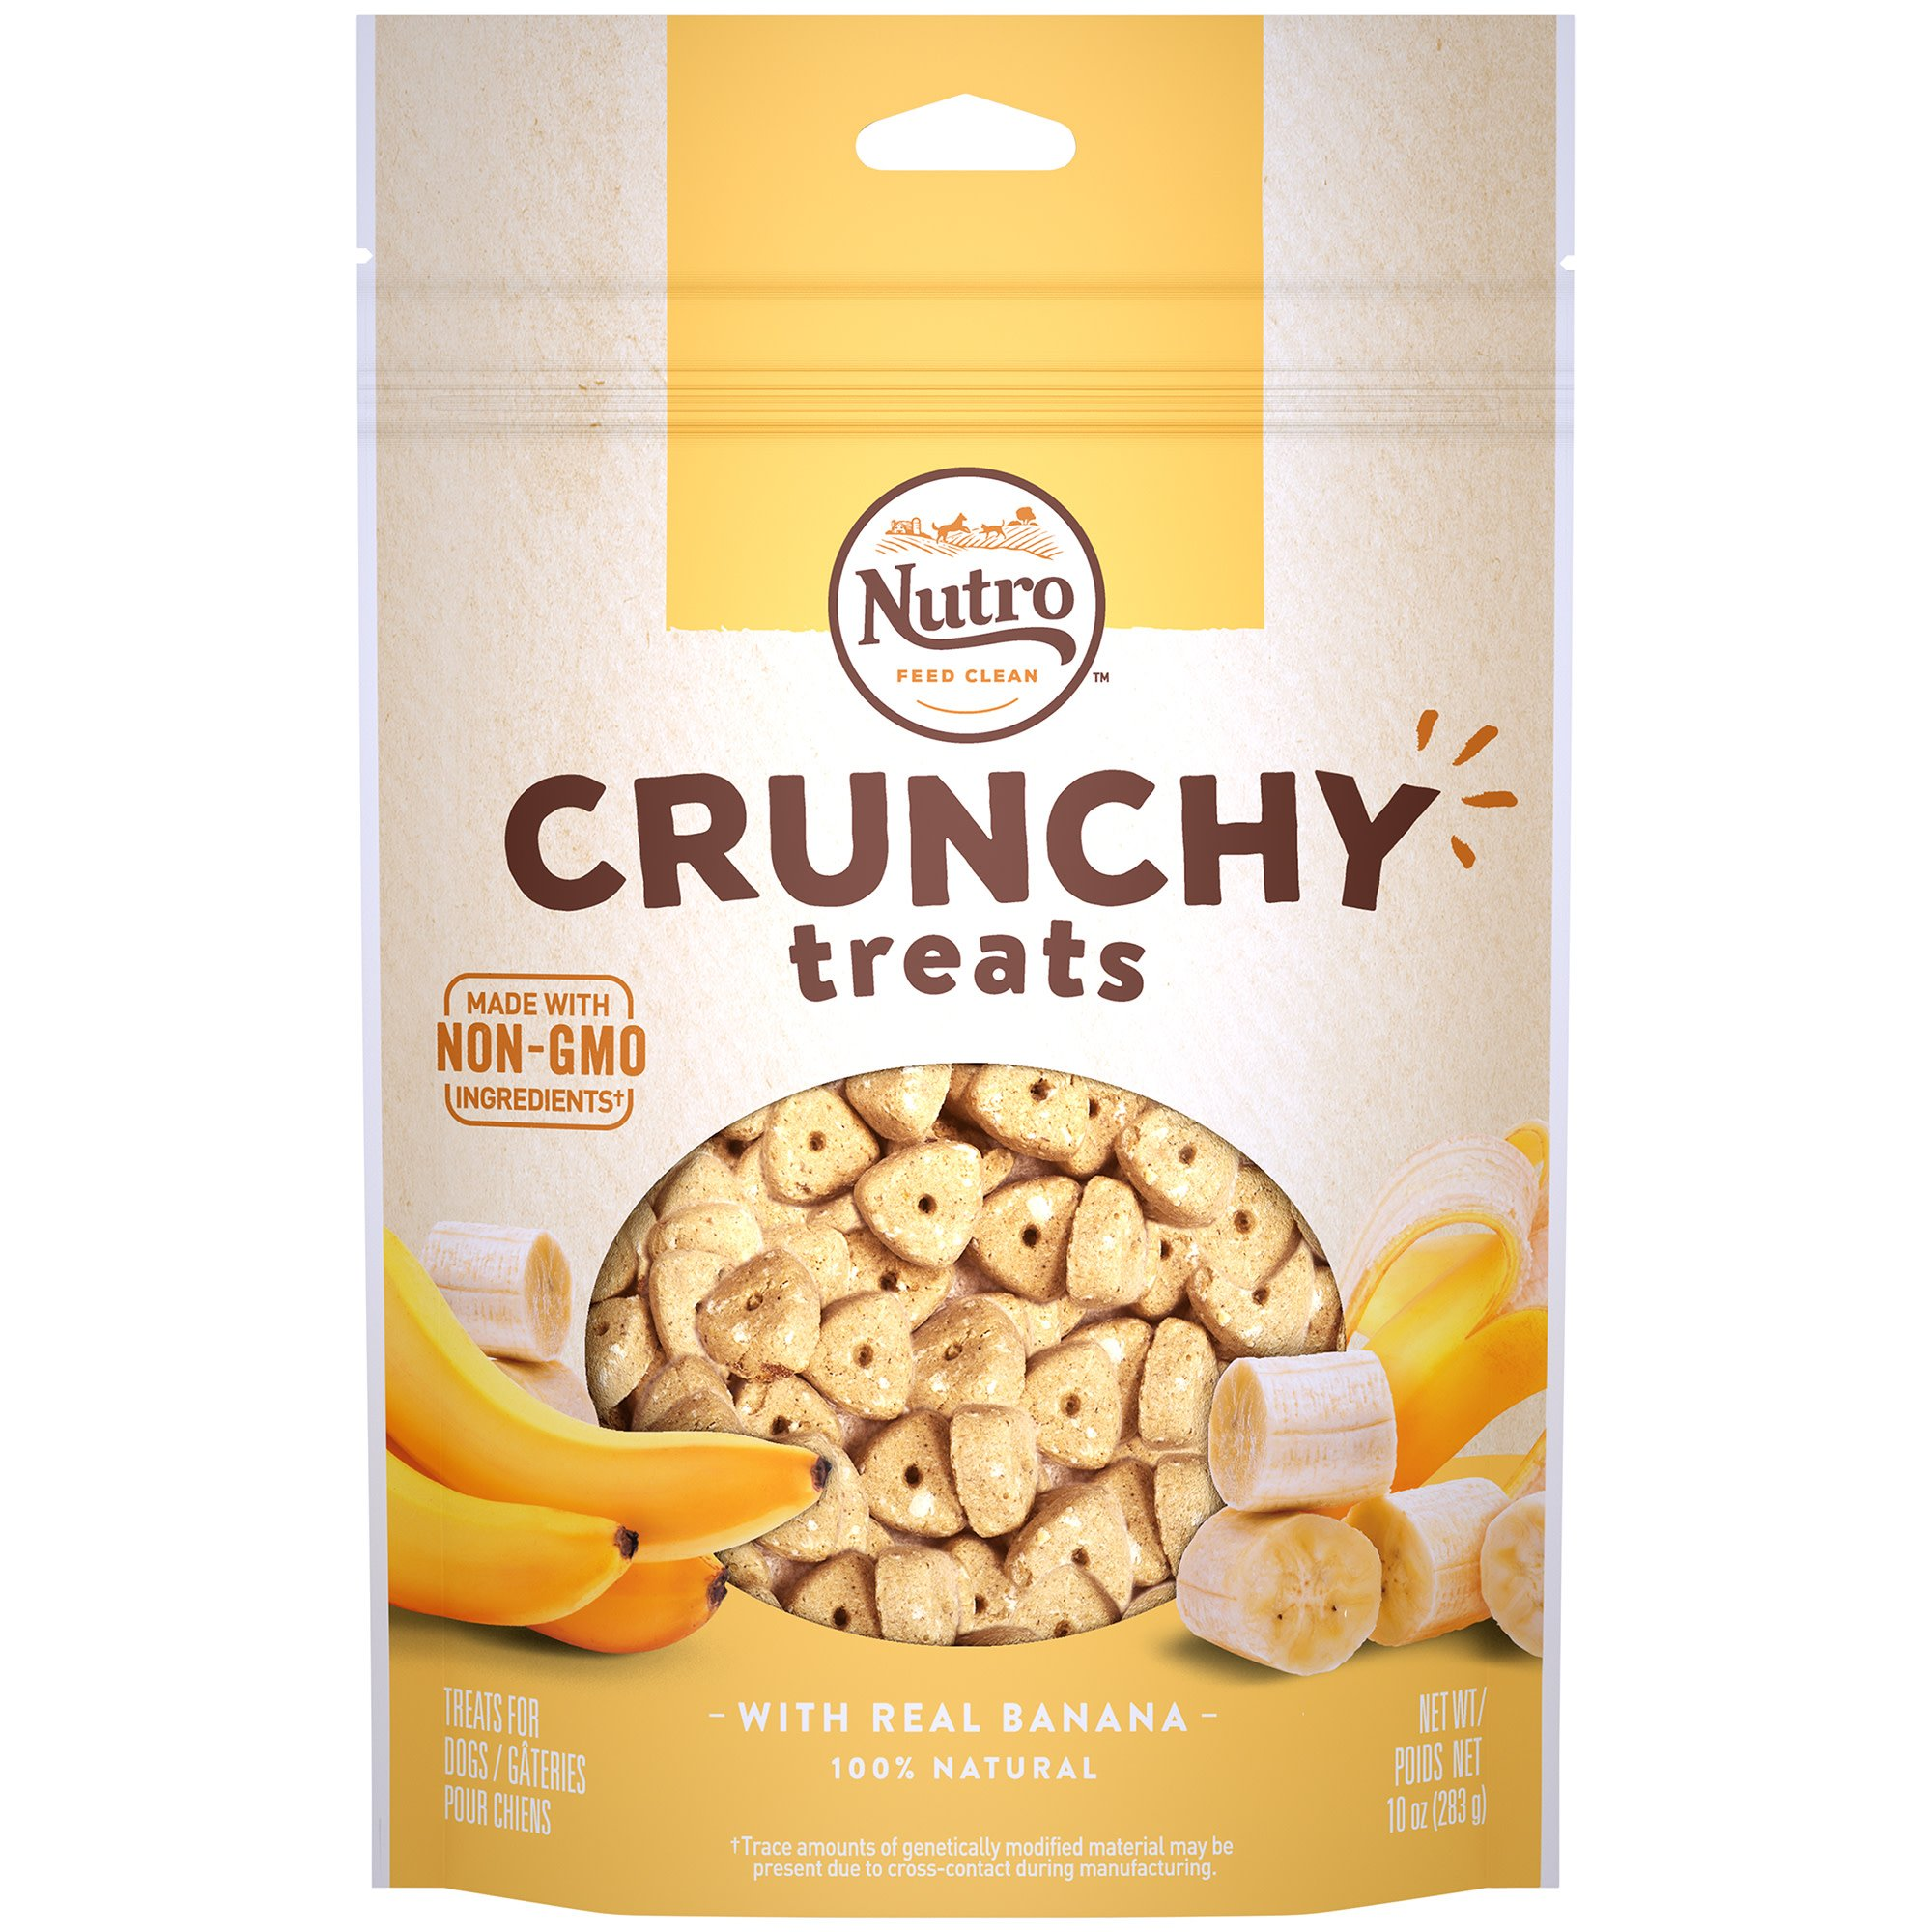 Nutro Crunchy Dog Treats with Real Banana